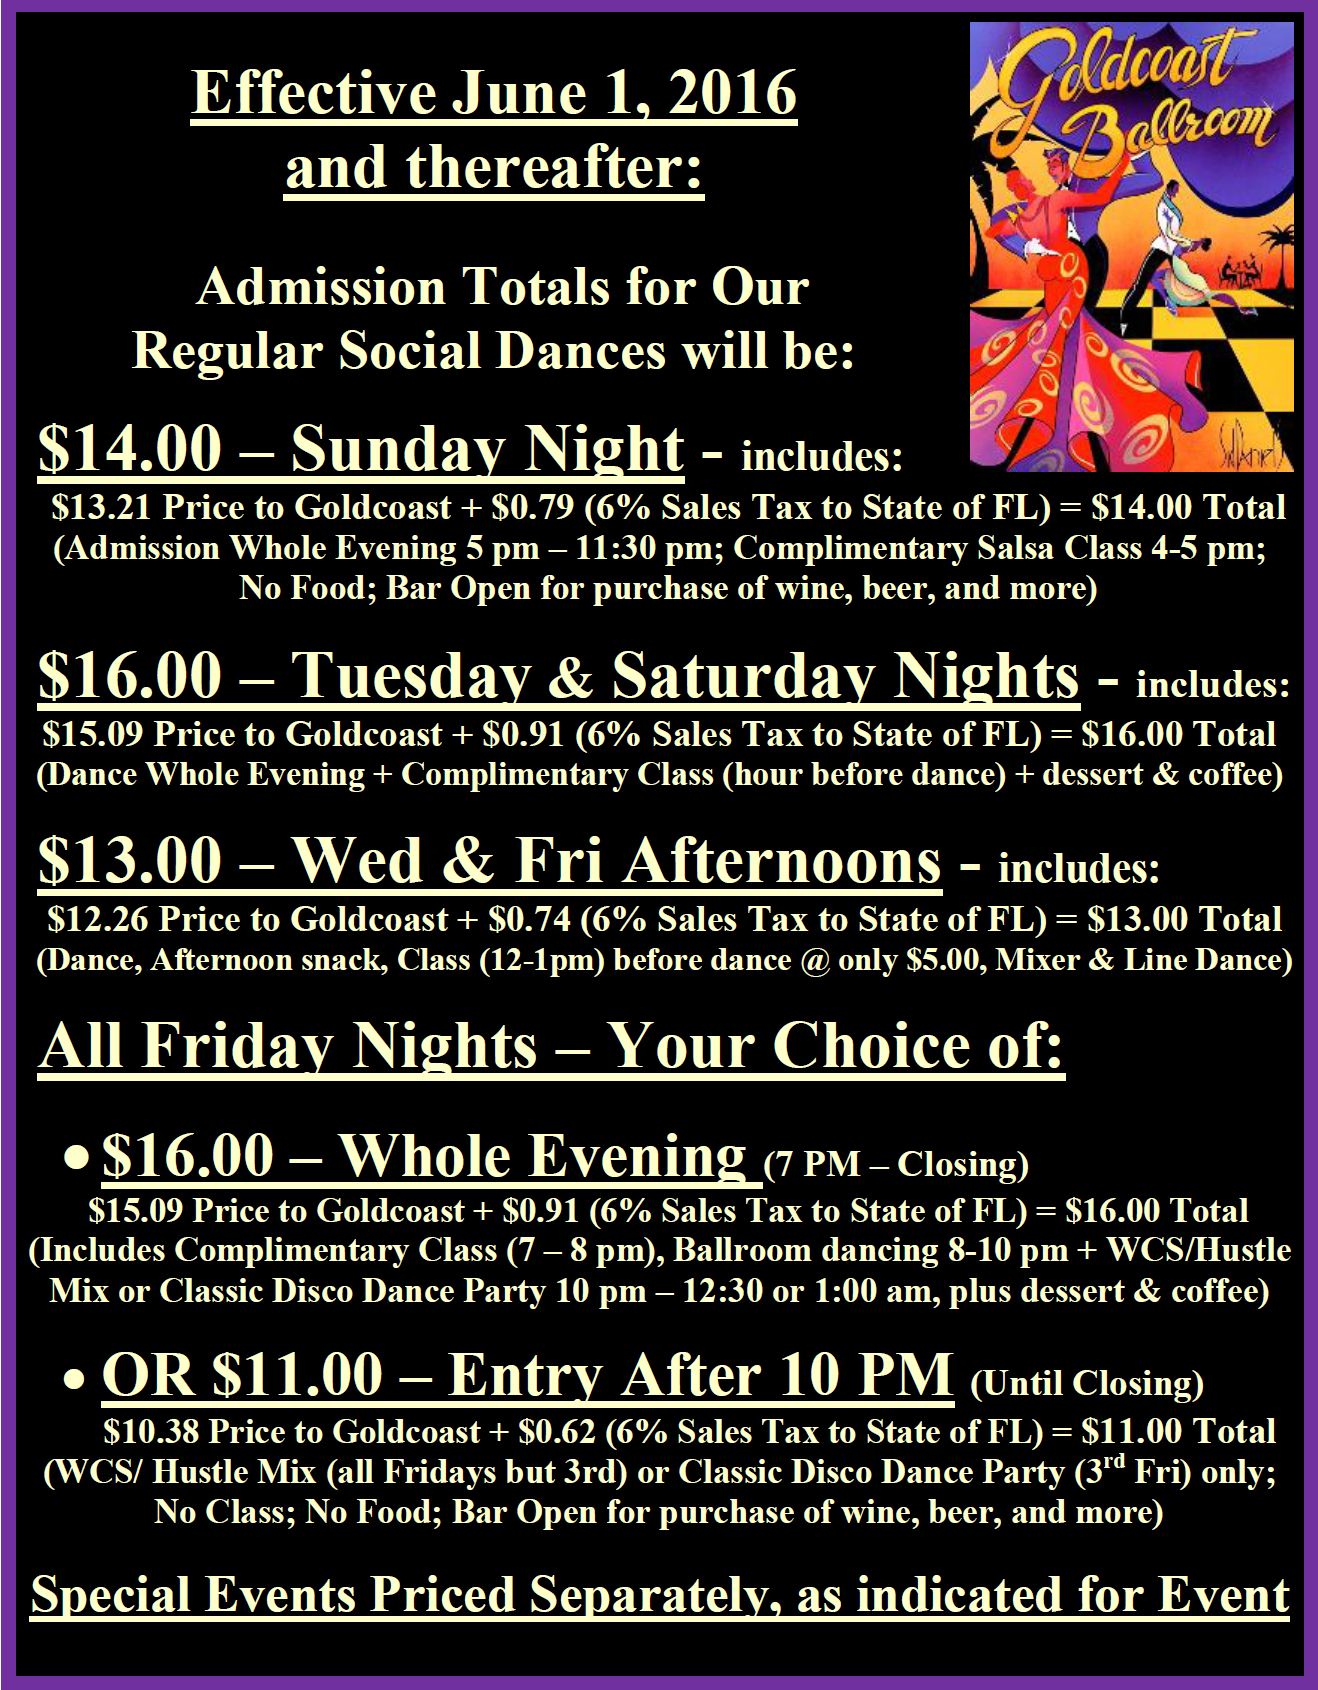 Goldcoast Ballroom Prices of our Regular Social Dances, effective June 1, 2016 and thereafter